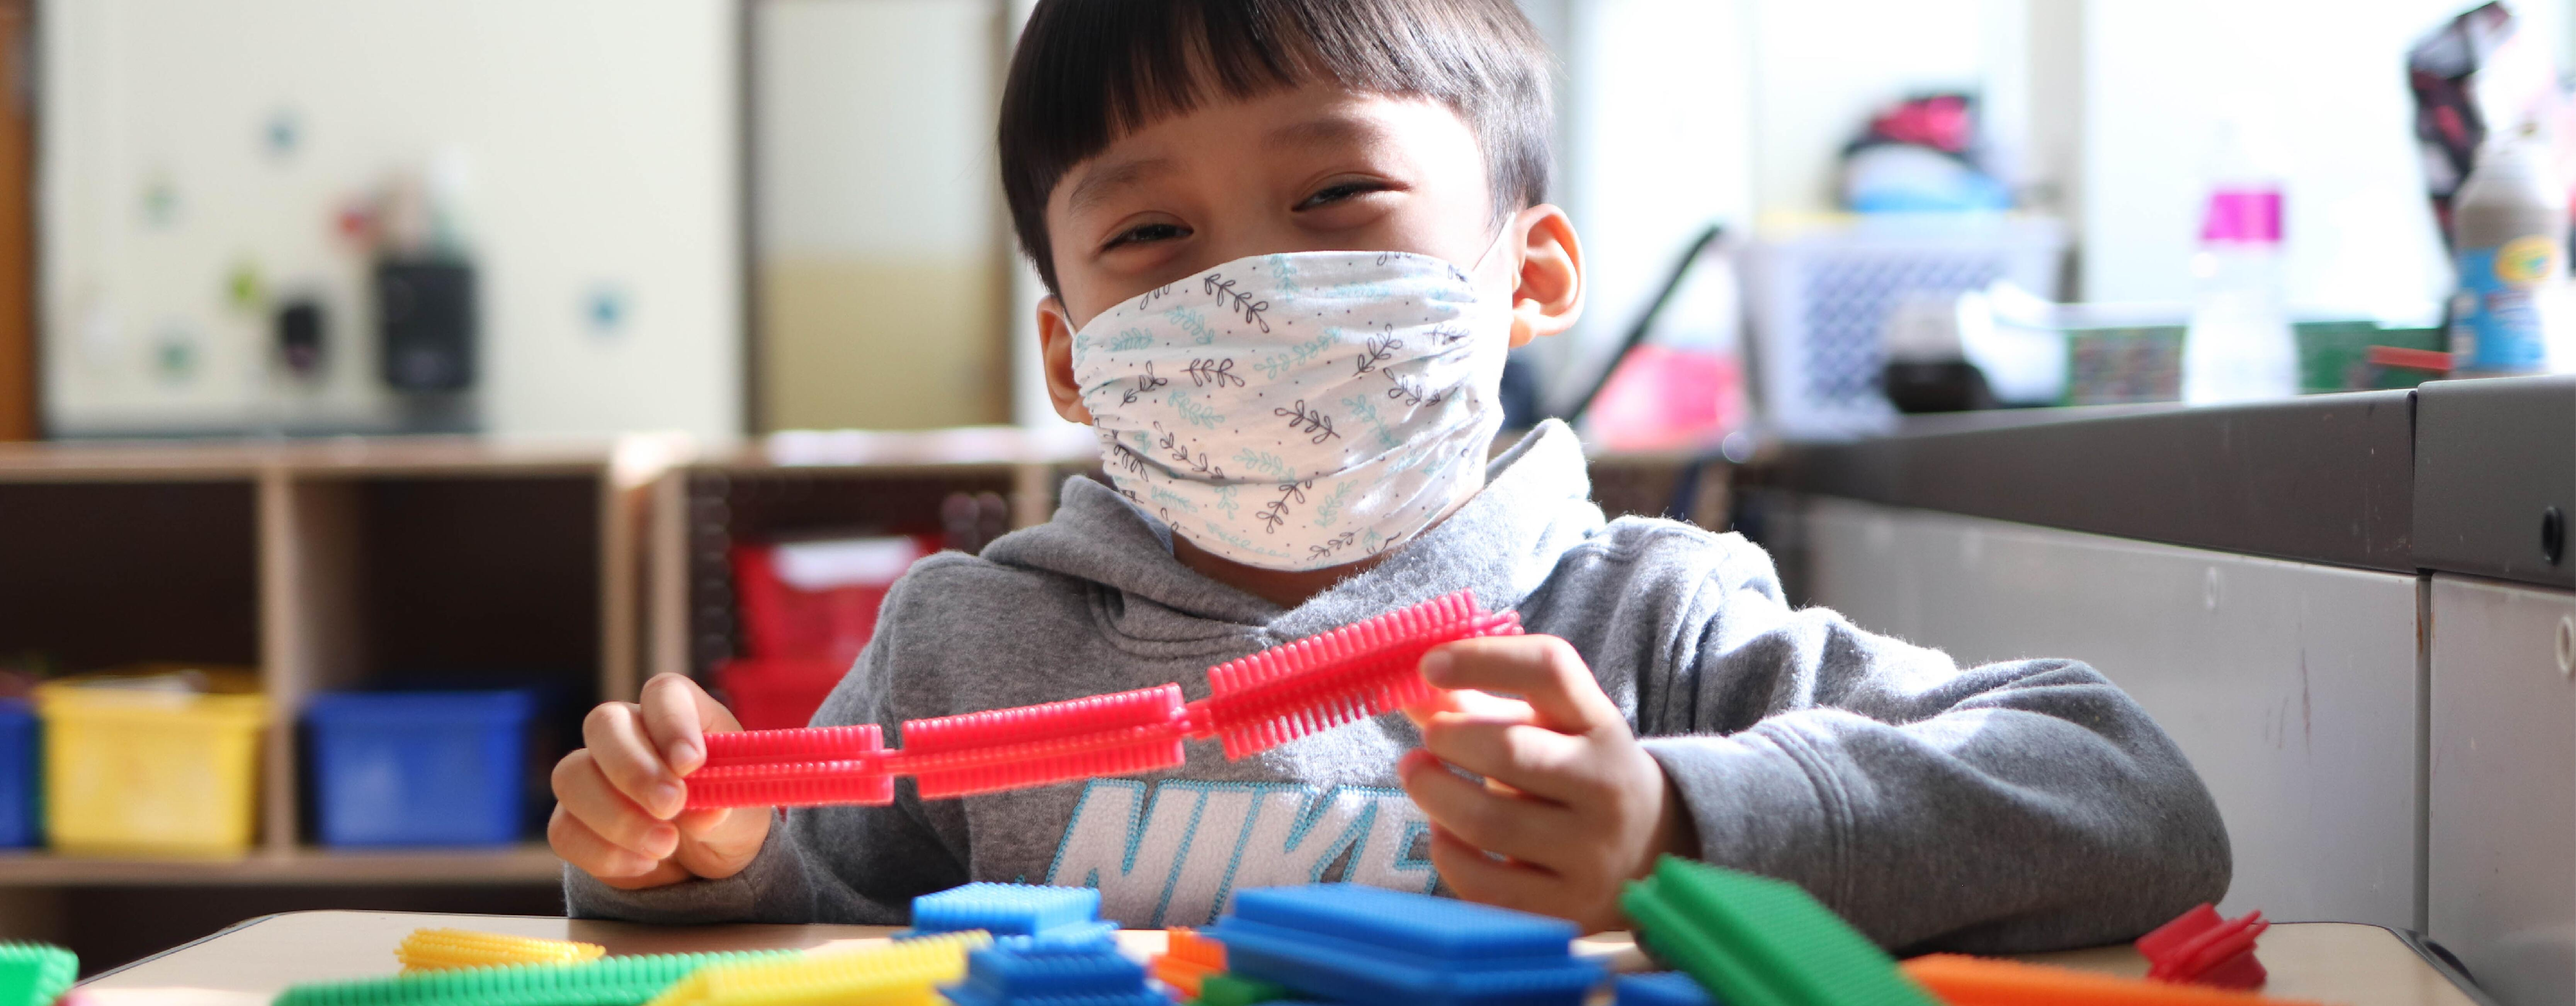 Student wearing a mask and smiling while playing with colorful interlocking blocks.